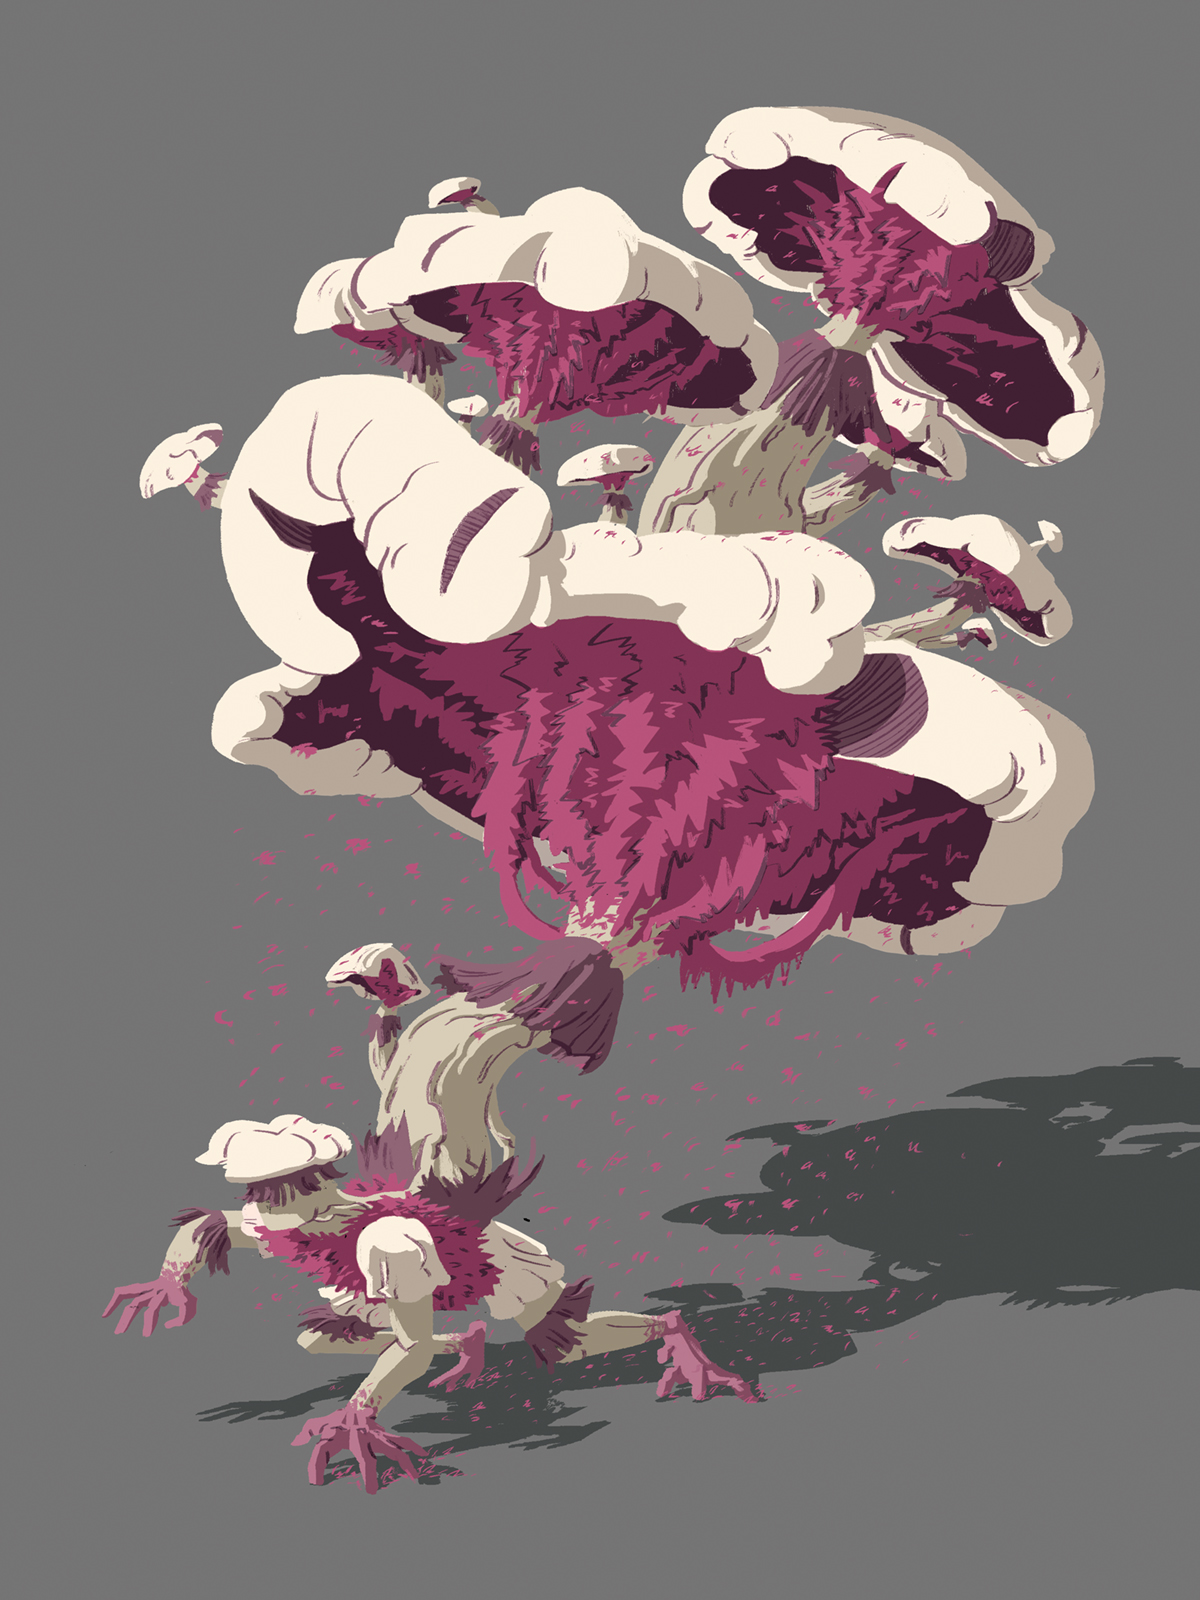 Sporren final concept art. The creature is on all fours with a pile of teetering mushrooms sprouting from its back.